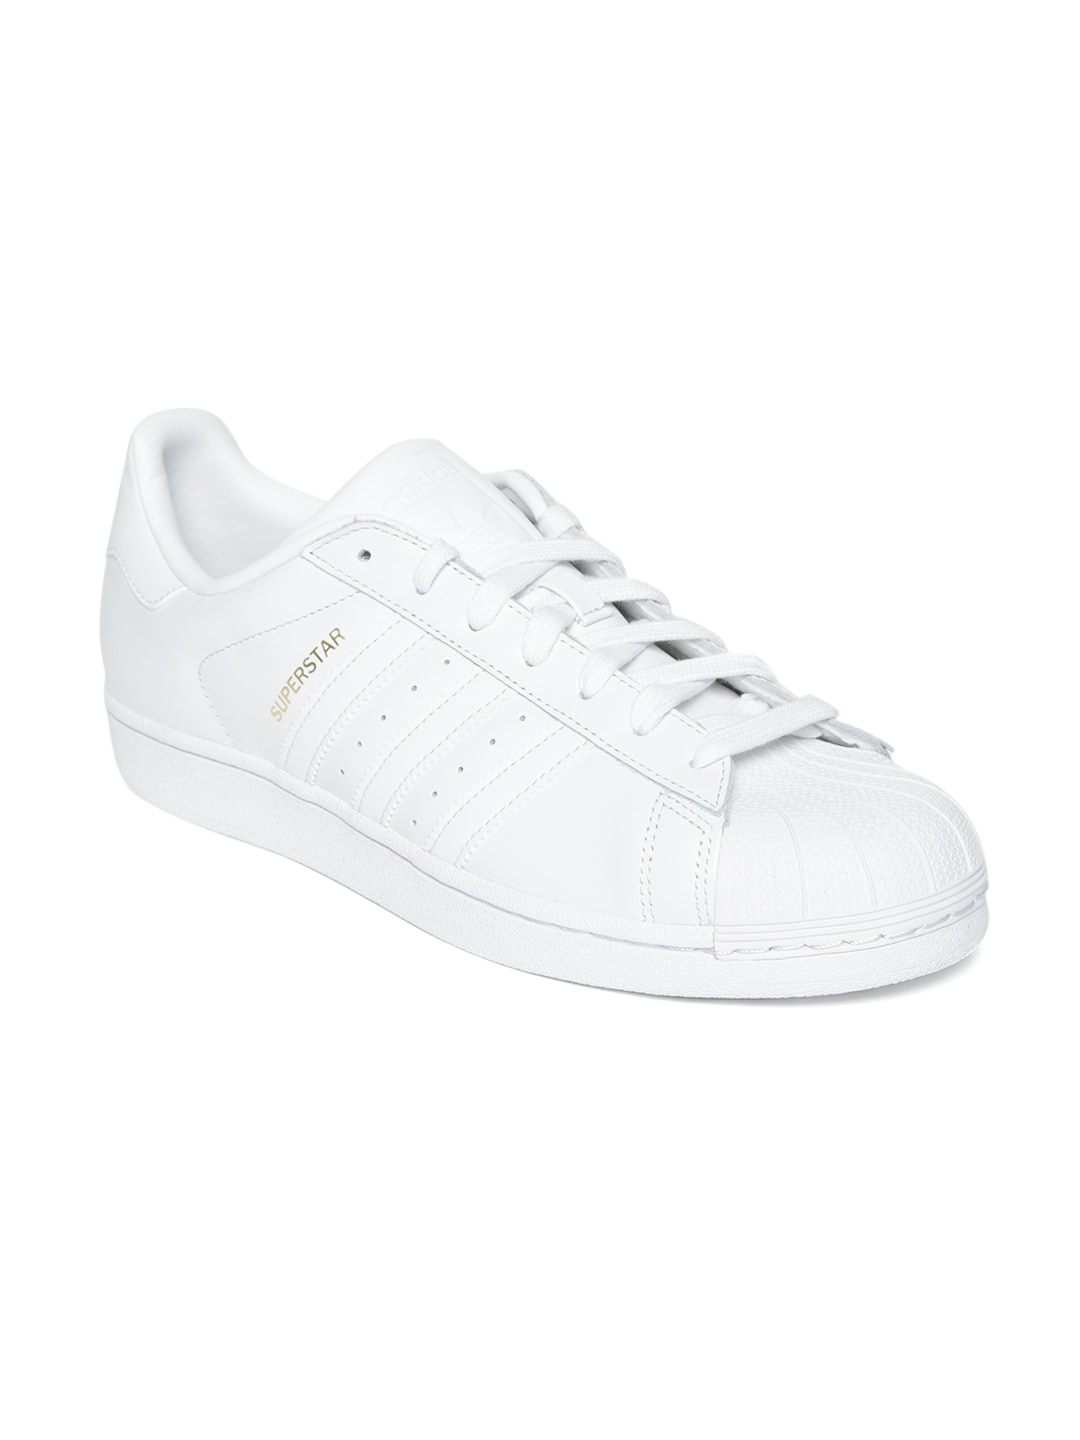 Adidas Originals Superstar Originals Adidas Superstar Buy Shoes BCxoWedr